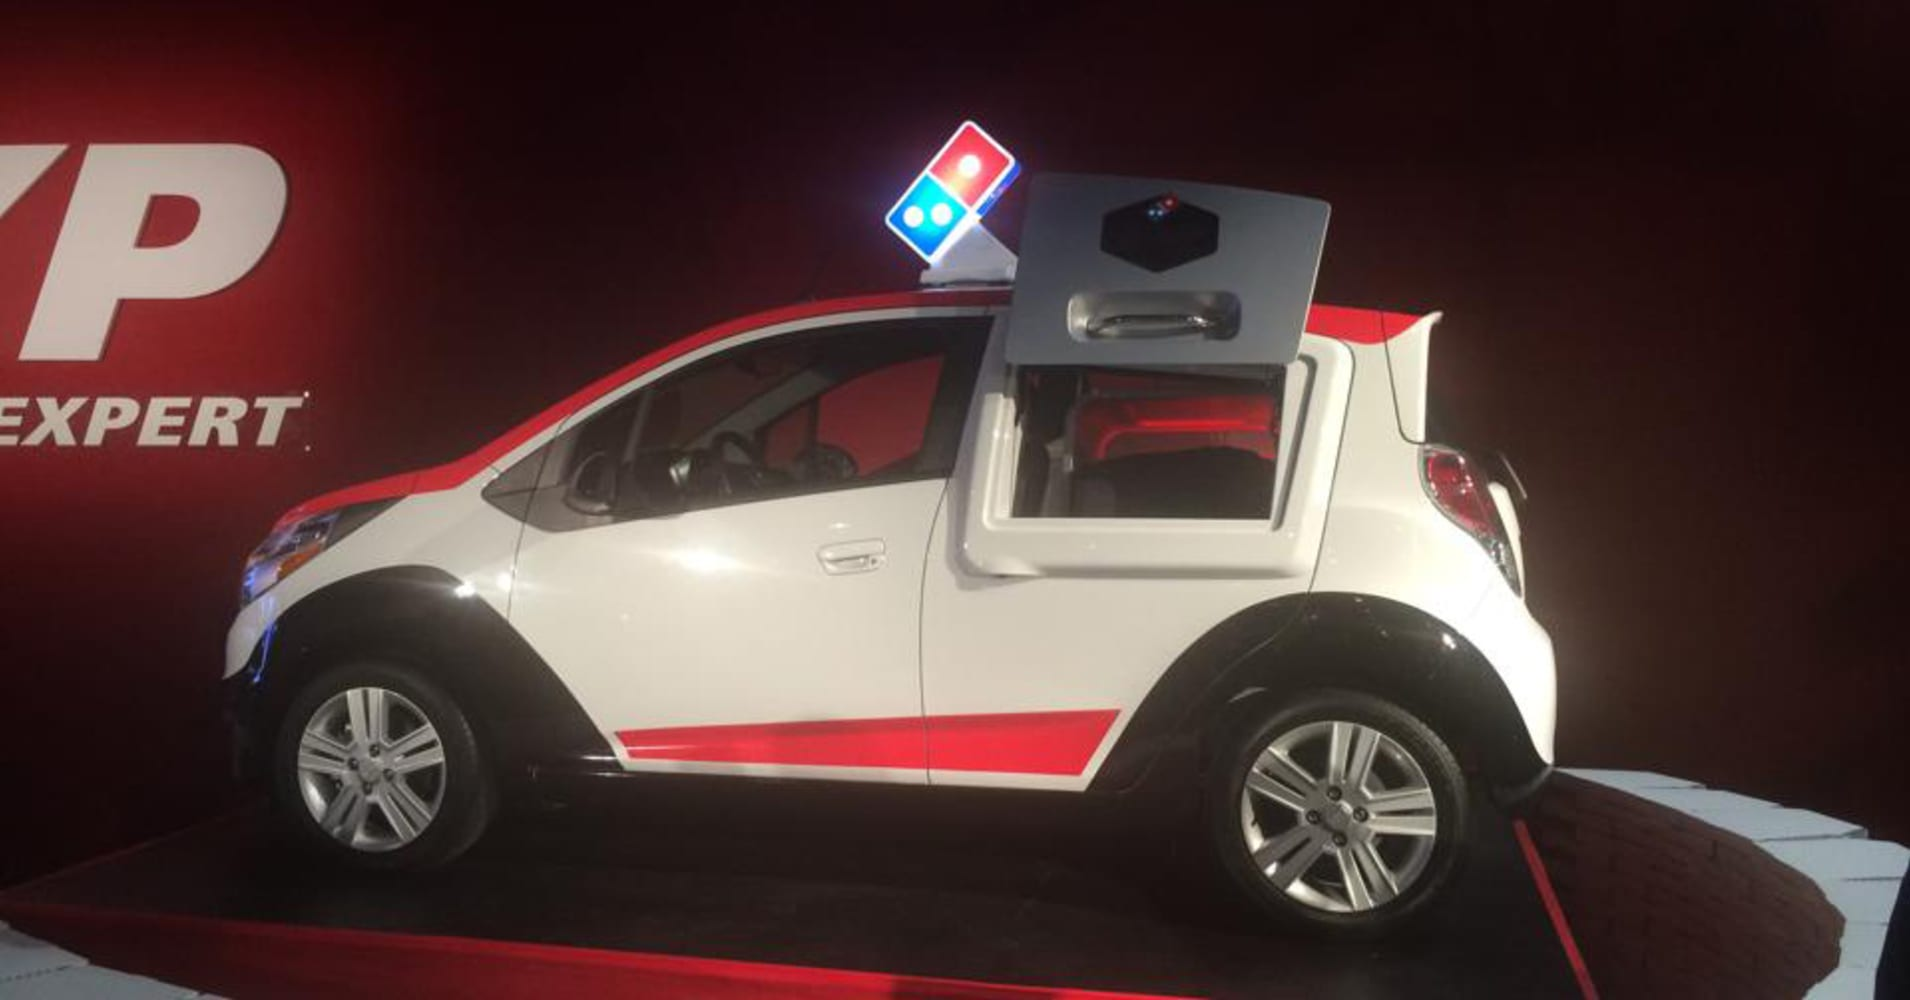 Meet the Domino's pizza delivery car of the future